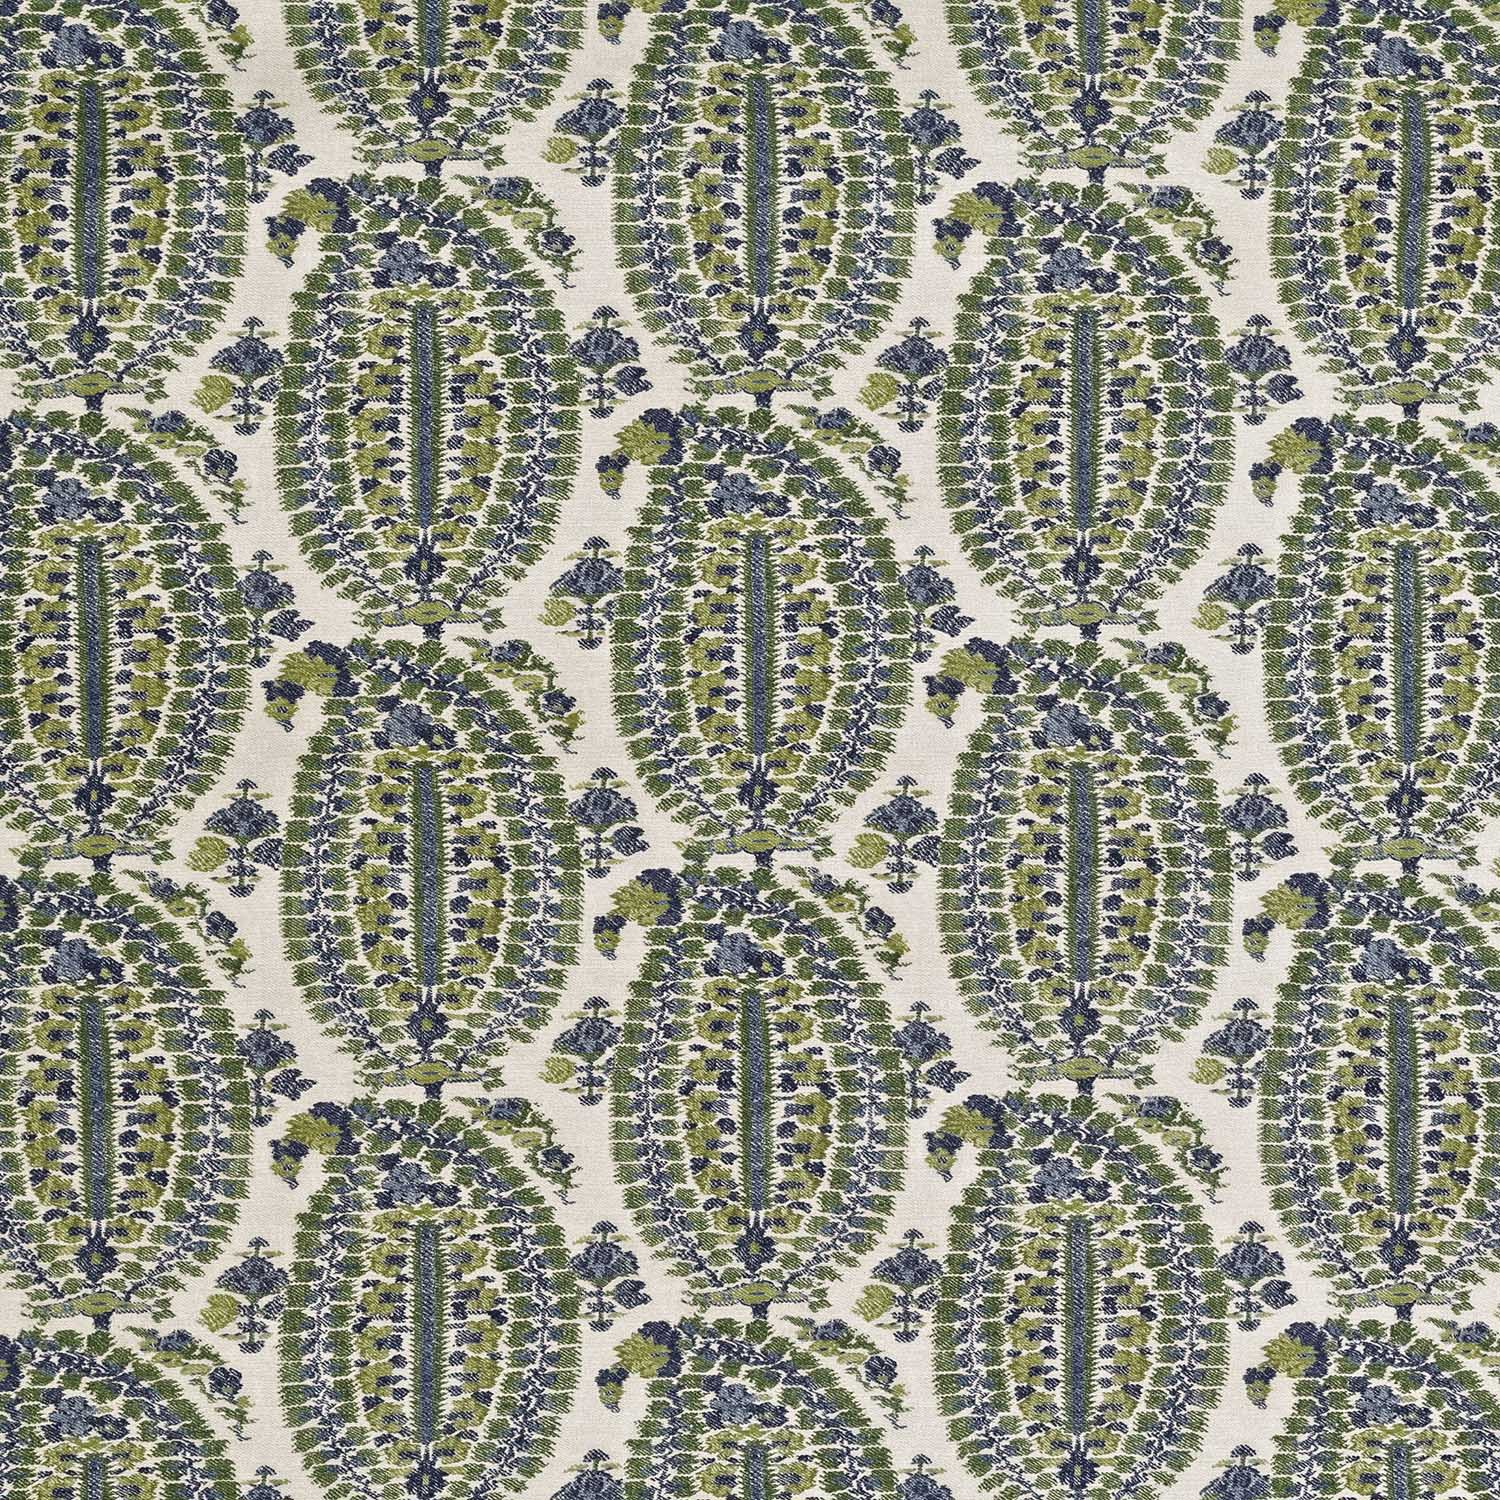 <p><strong>ANOUSHKA</strong>blue/green 1610-04<a href=/the-winthorp-collection/anoushka-blue-green-1610-04>More →</a></p>